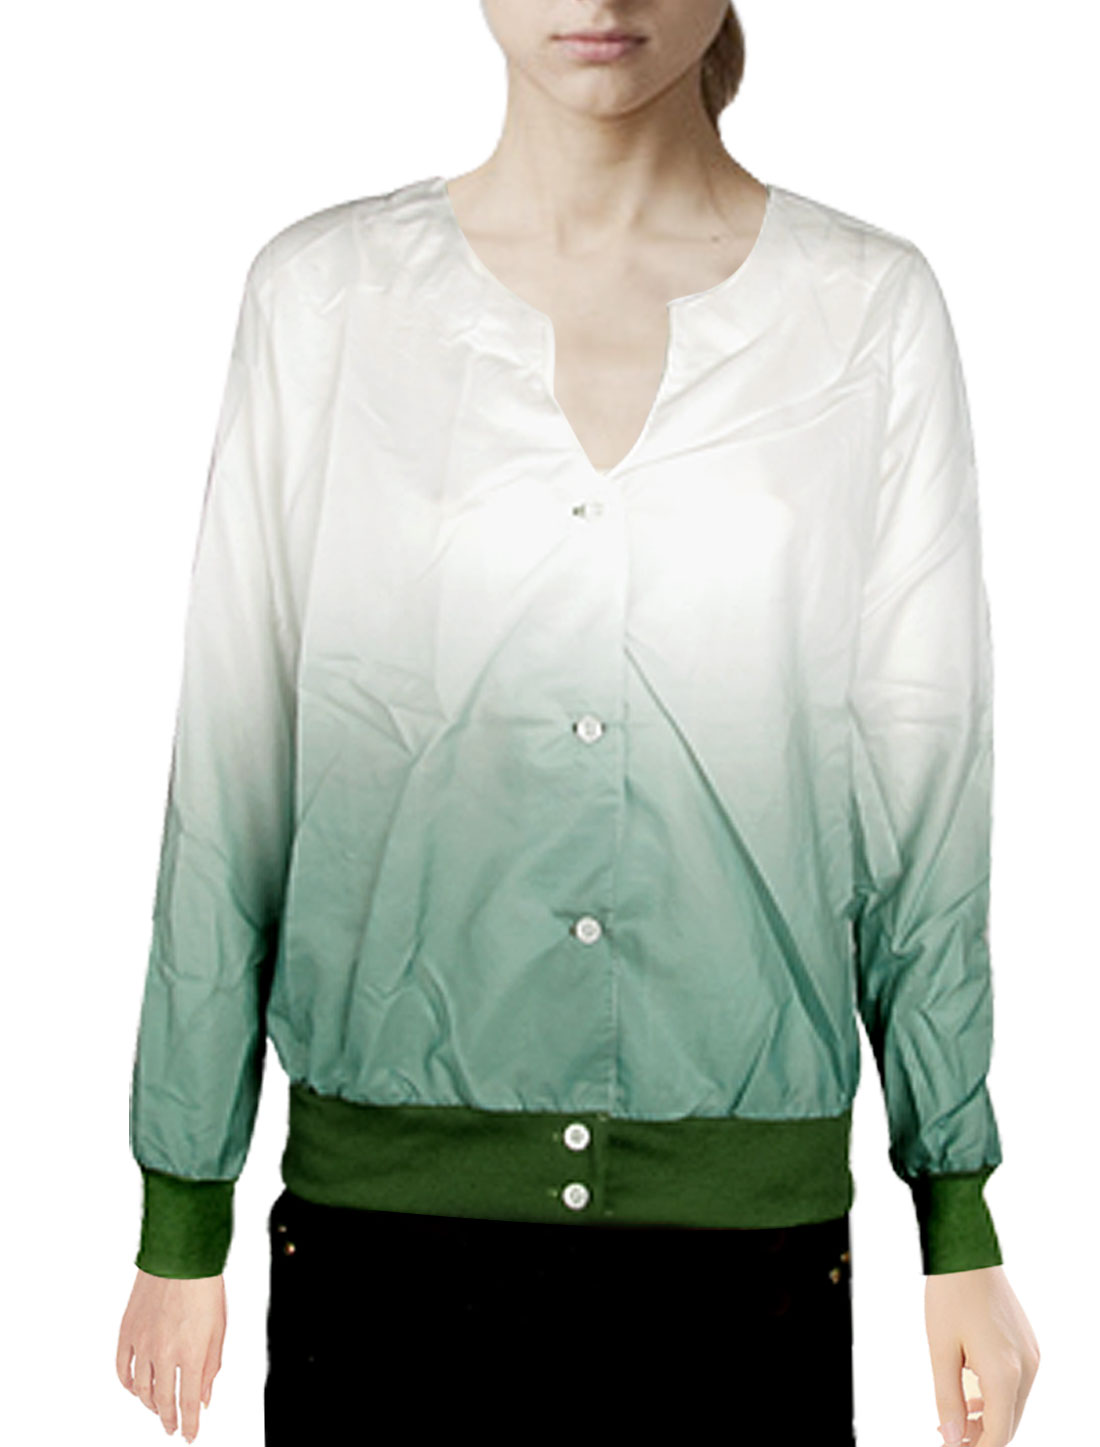 Button Closure Long Sleeves Green White Small Coat XS for Lady